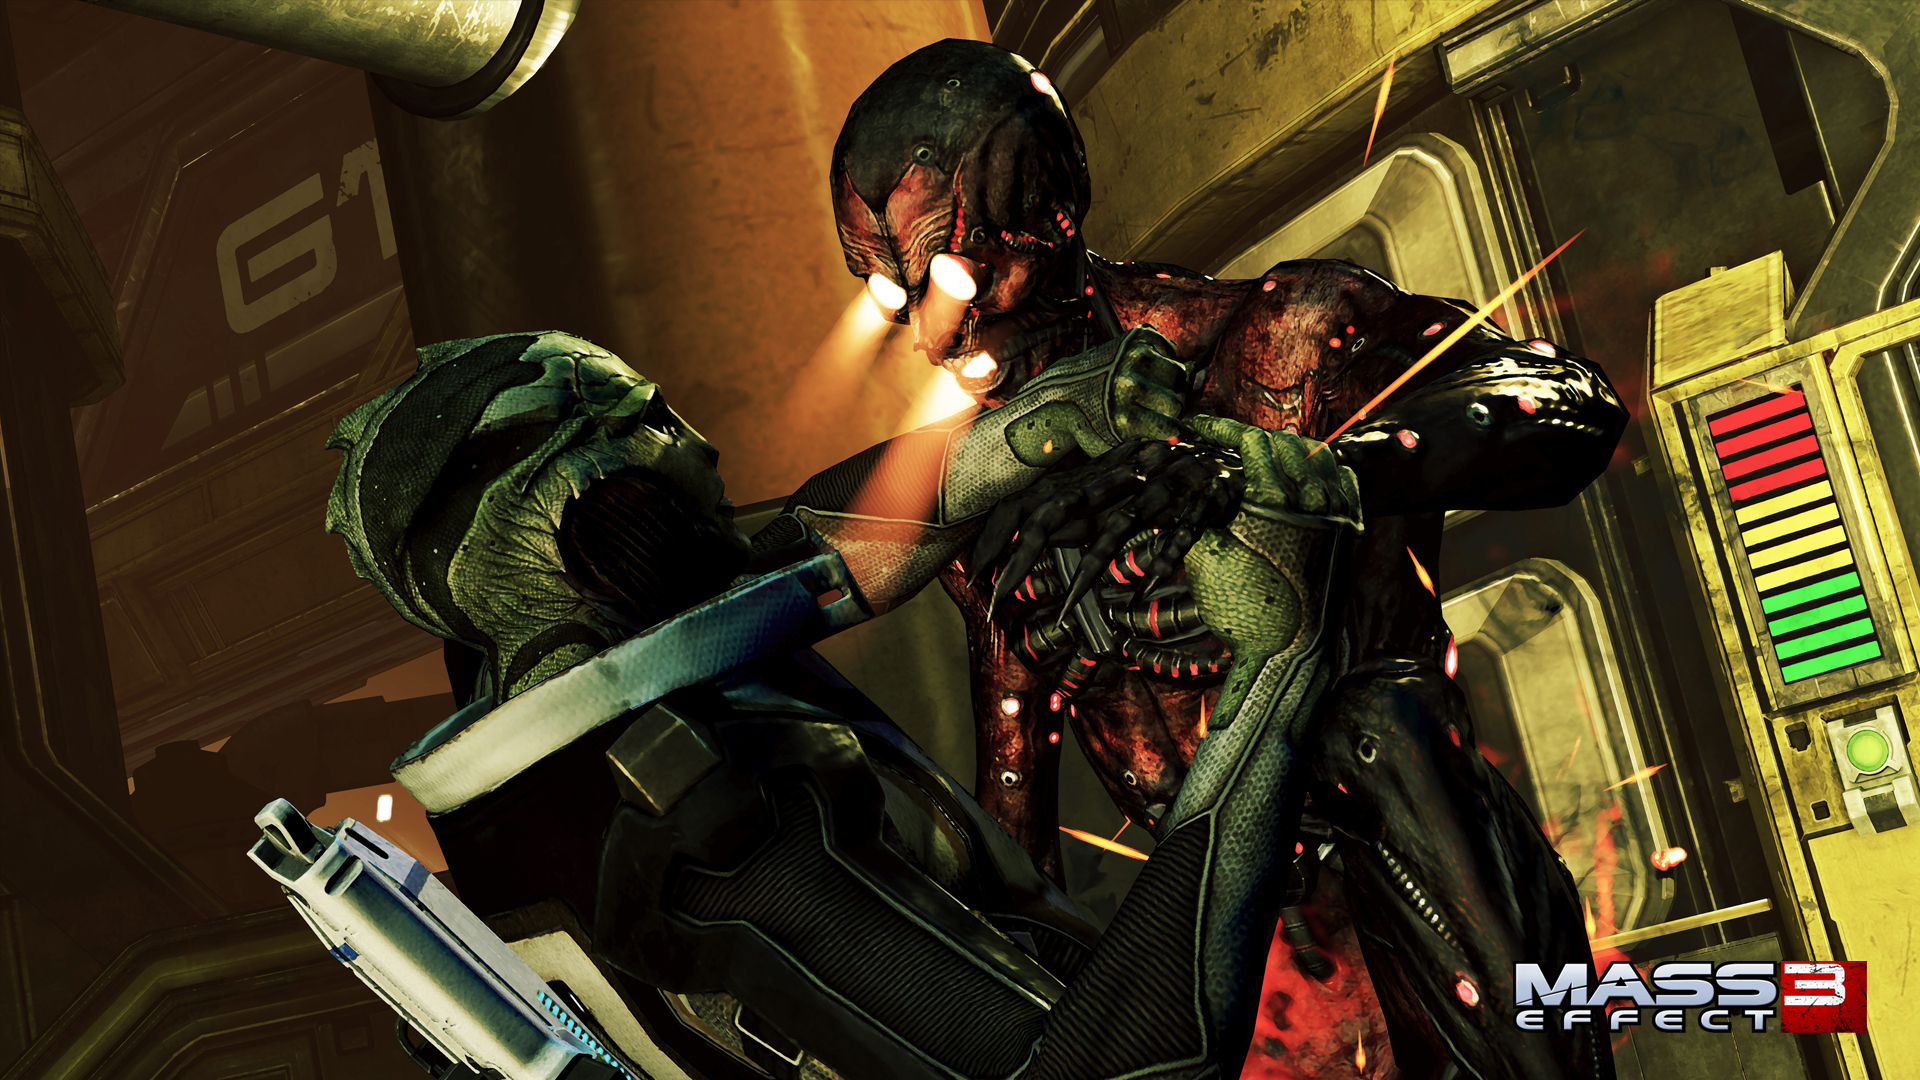 N7 Iphone Wallpaper Mass Effect 3 Full Hd Wallpaper And Background 1920x1080